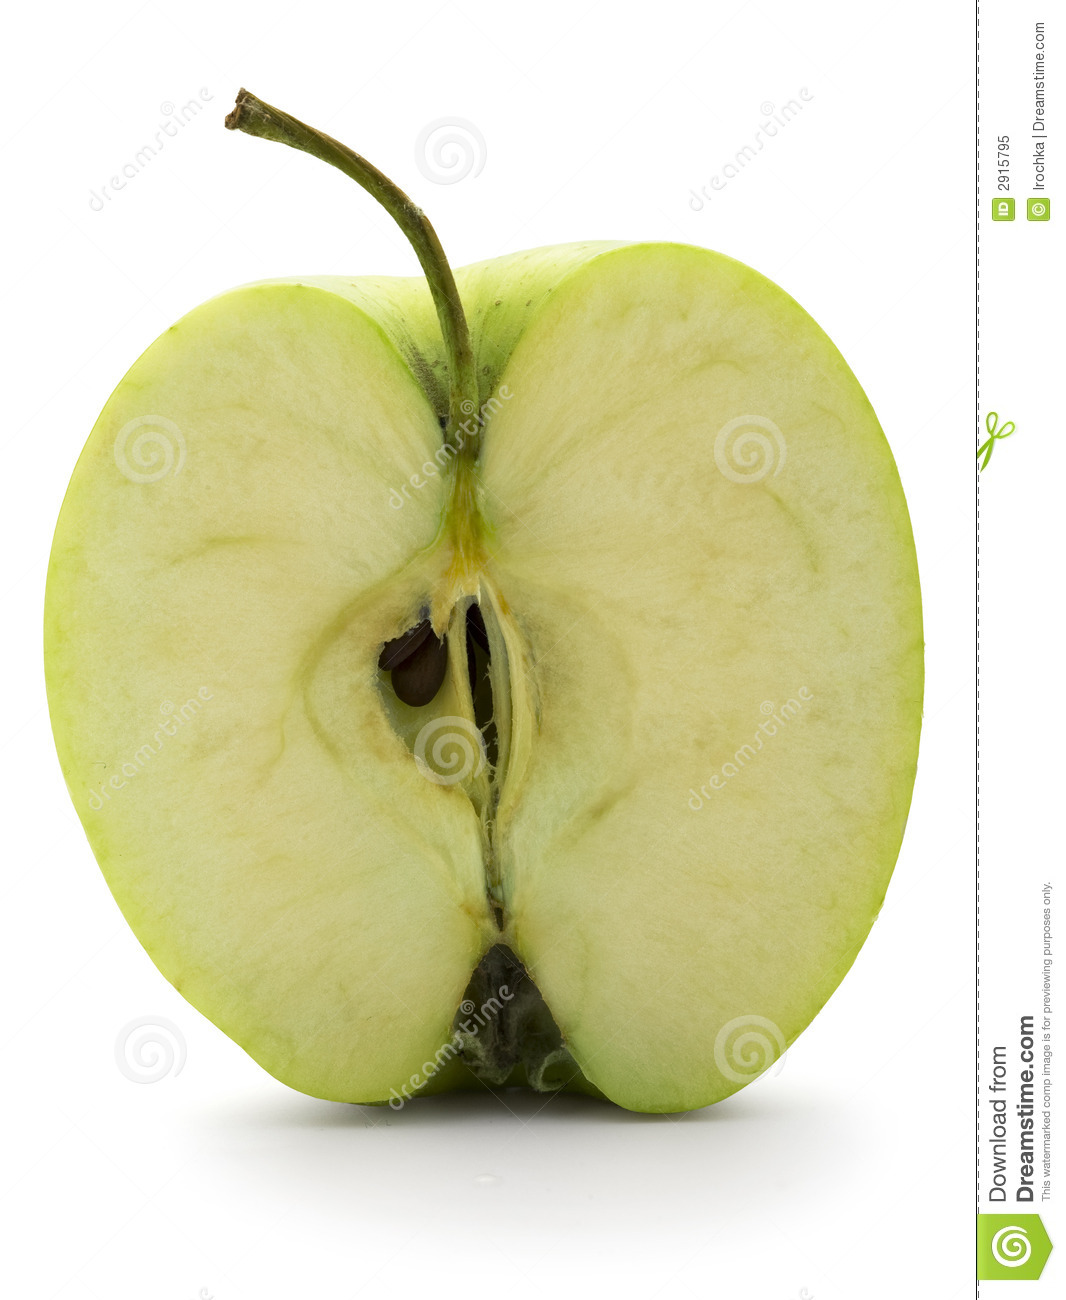 apple cut in half royalty free stock photo image 2915795